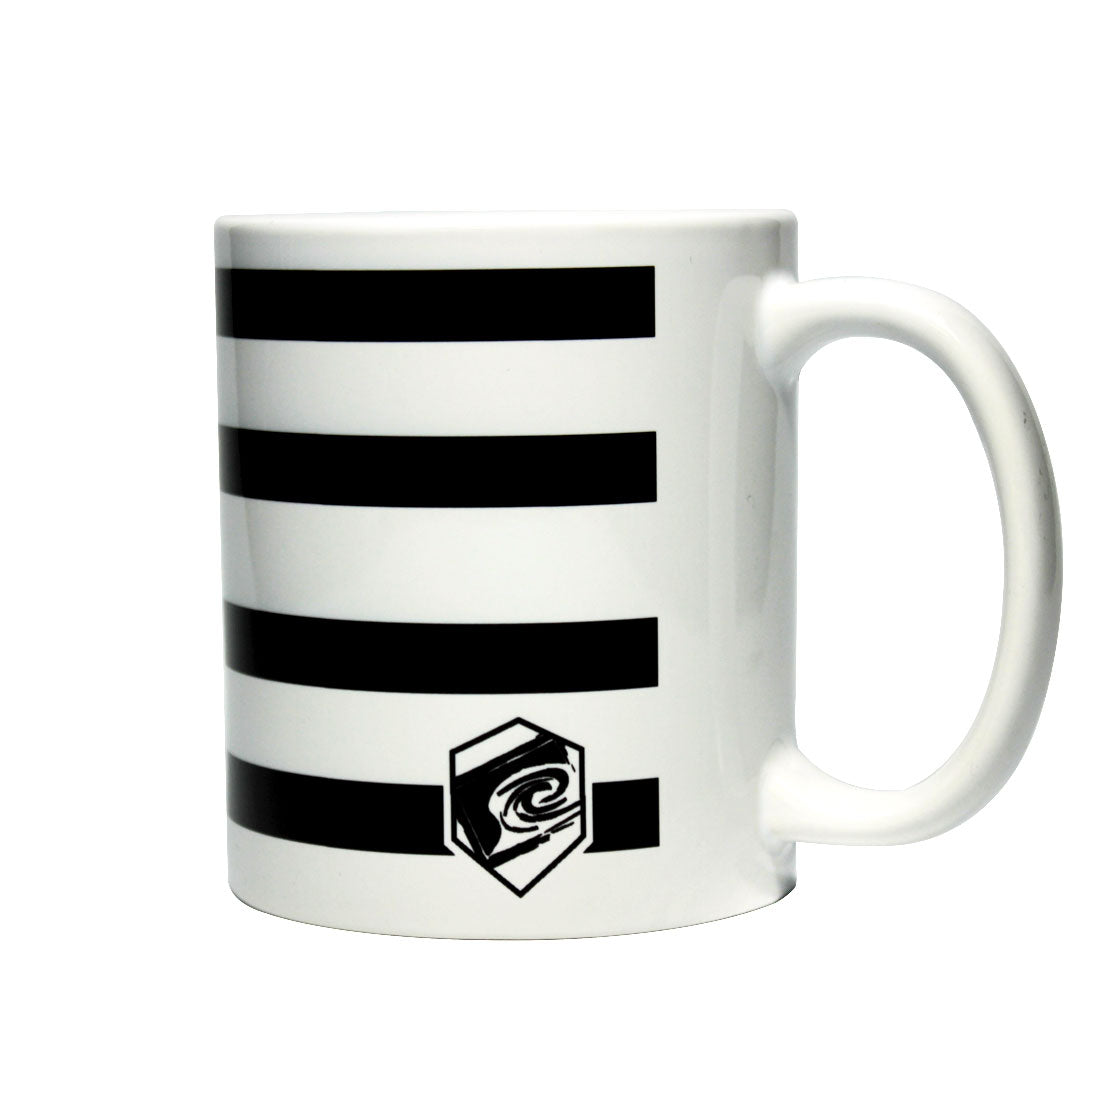 Liquid Militia Anchor coffee mug black and white stripes